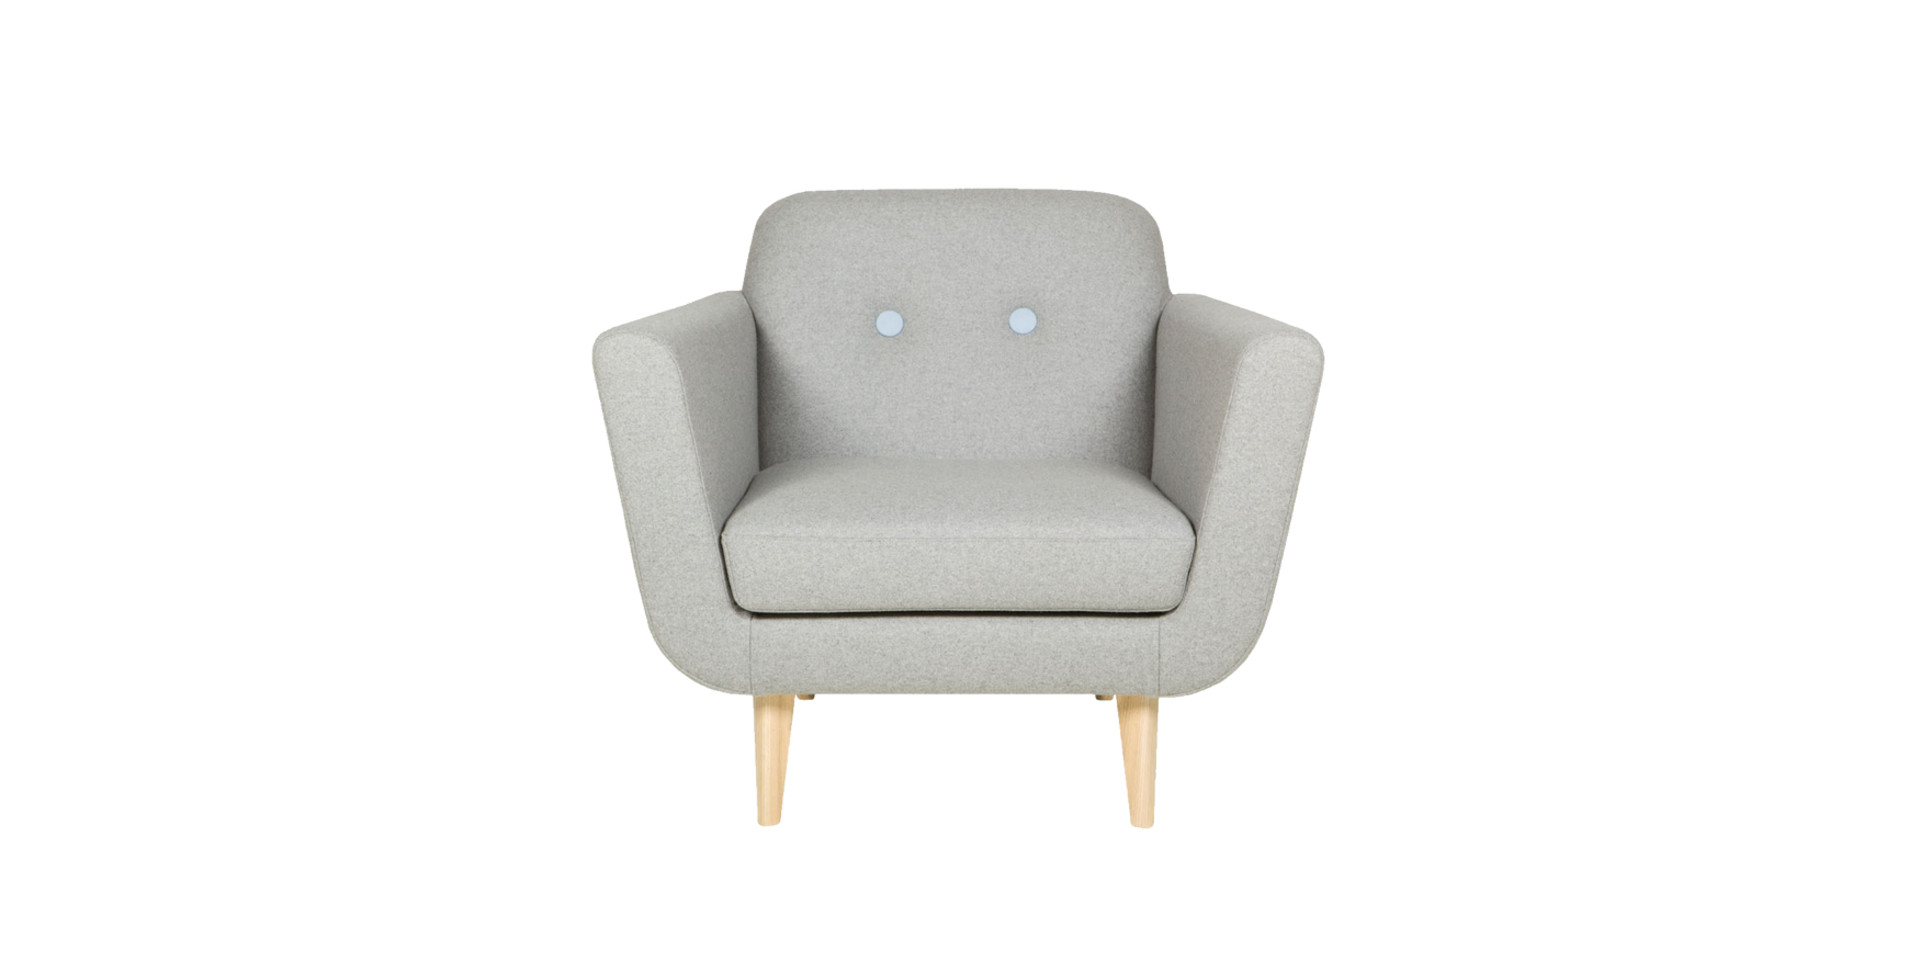 sits-otto-fauteuil-armchair_panno1000_light_grey_1